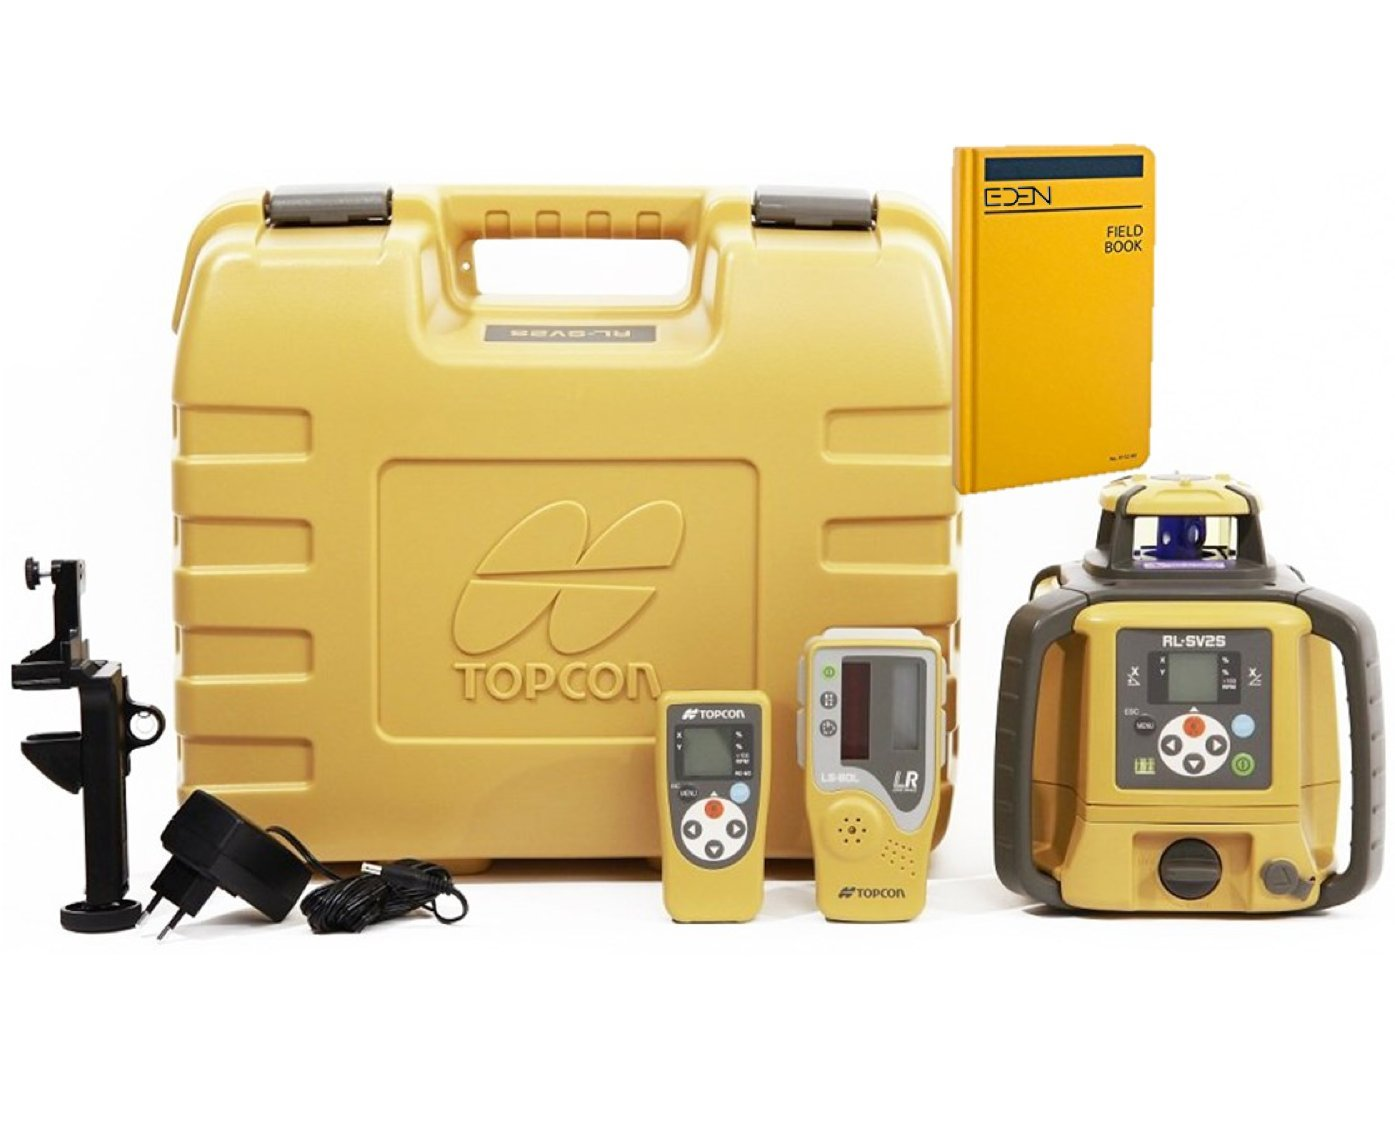 Topcon RL-SV2S Dual Grade Rotary Laser with BONUS EDEN Field Book | IP66 Rating Drop, Dust, Water Resistant | 800m Construction Laser | Includes LS-80L Receiver, Detector Holder, Hard Case